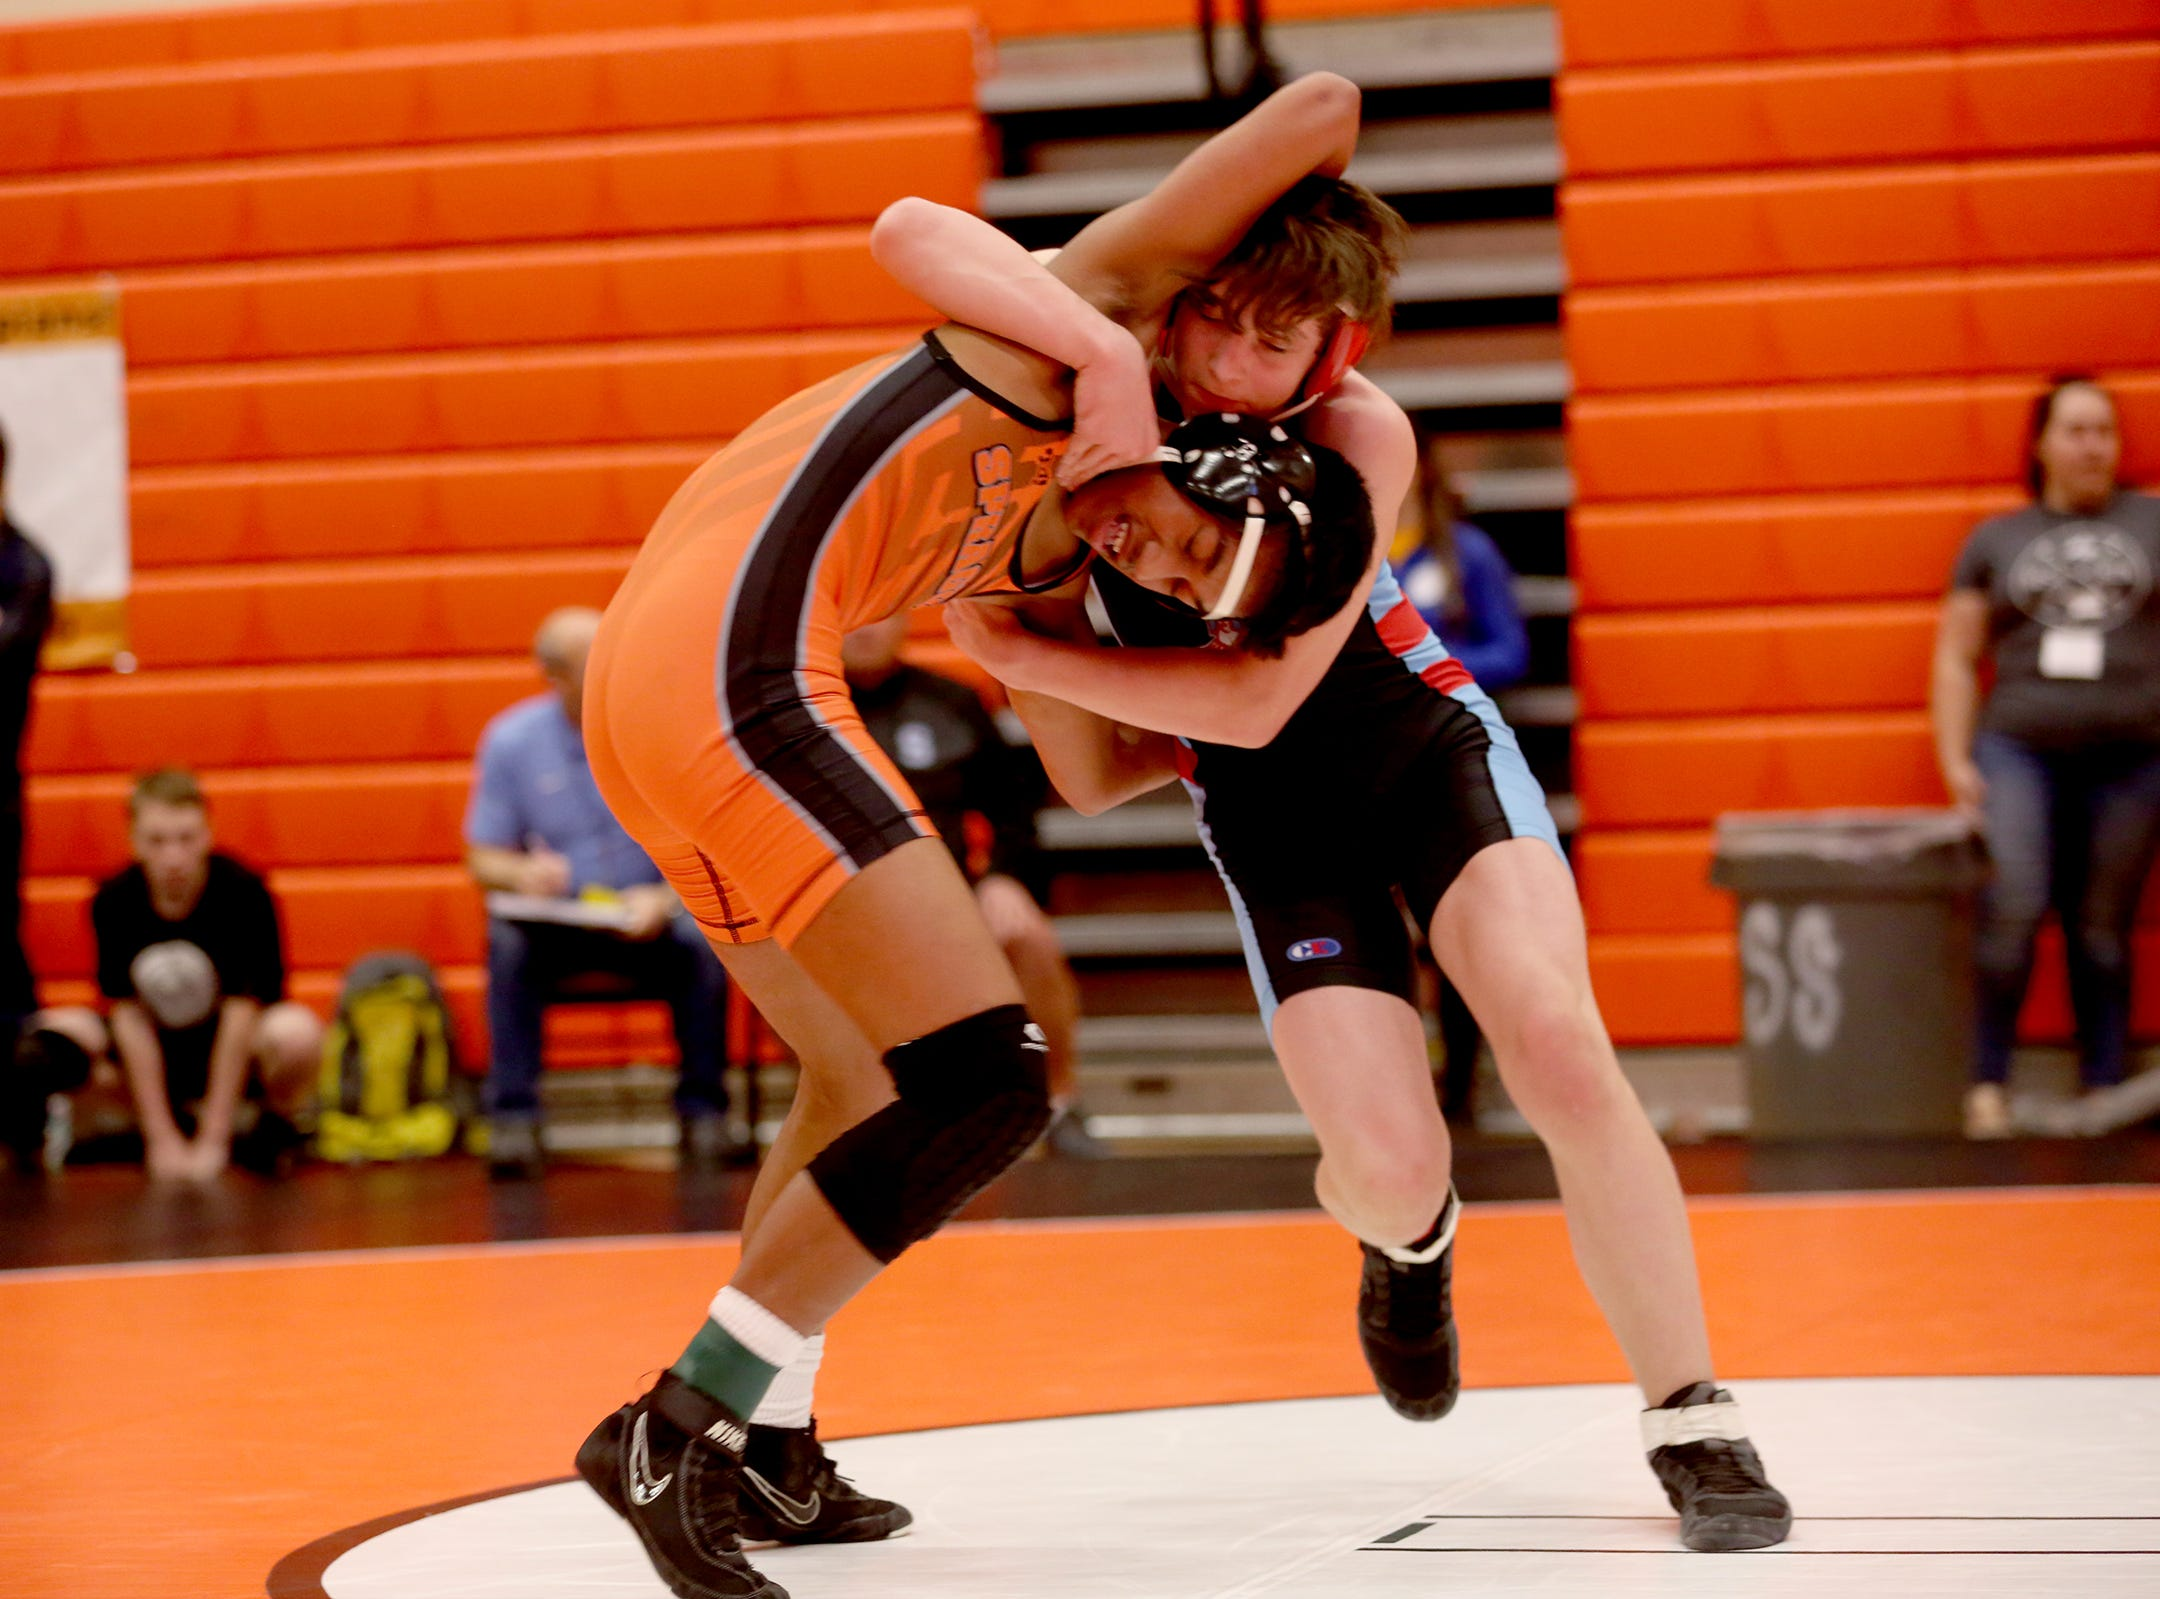 South Salem's Joshua Cox holds down Sprague's Jason Note as they compete in the 126 pound weight class during the Mountain Valley Conference district wrestling tournament at Sprague High School in Salem on Friday, Feb. 15, 2019.